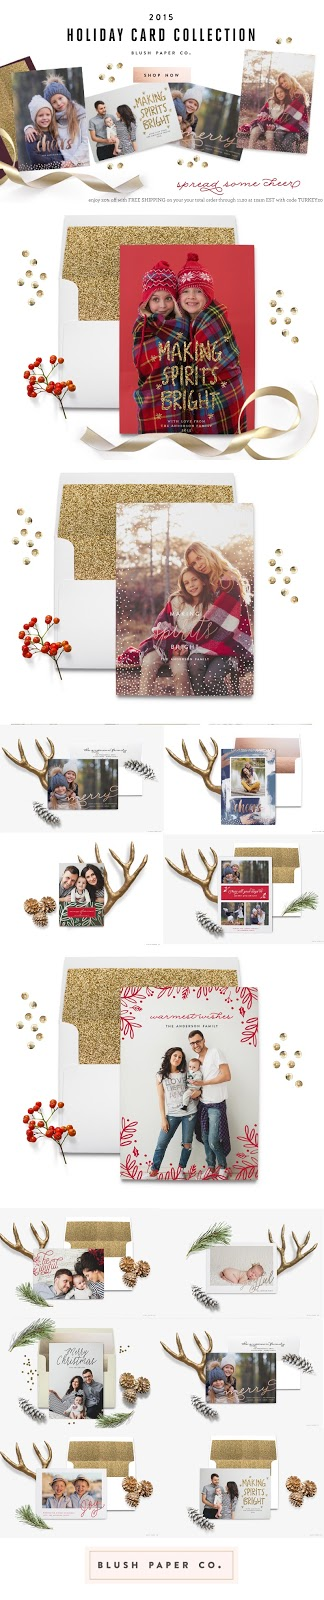 2015 Holiday Card Collection